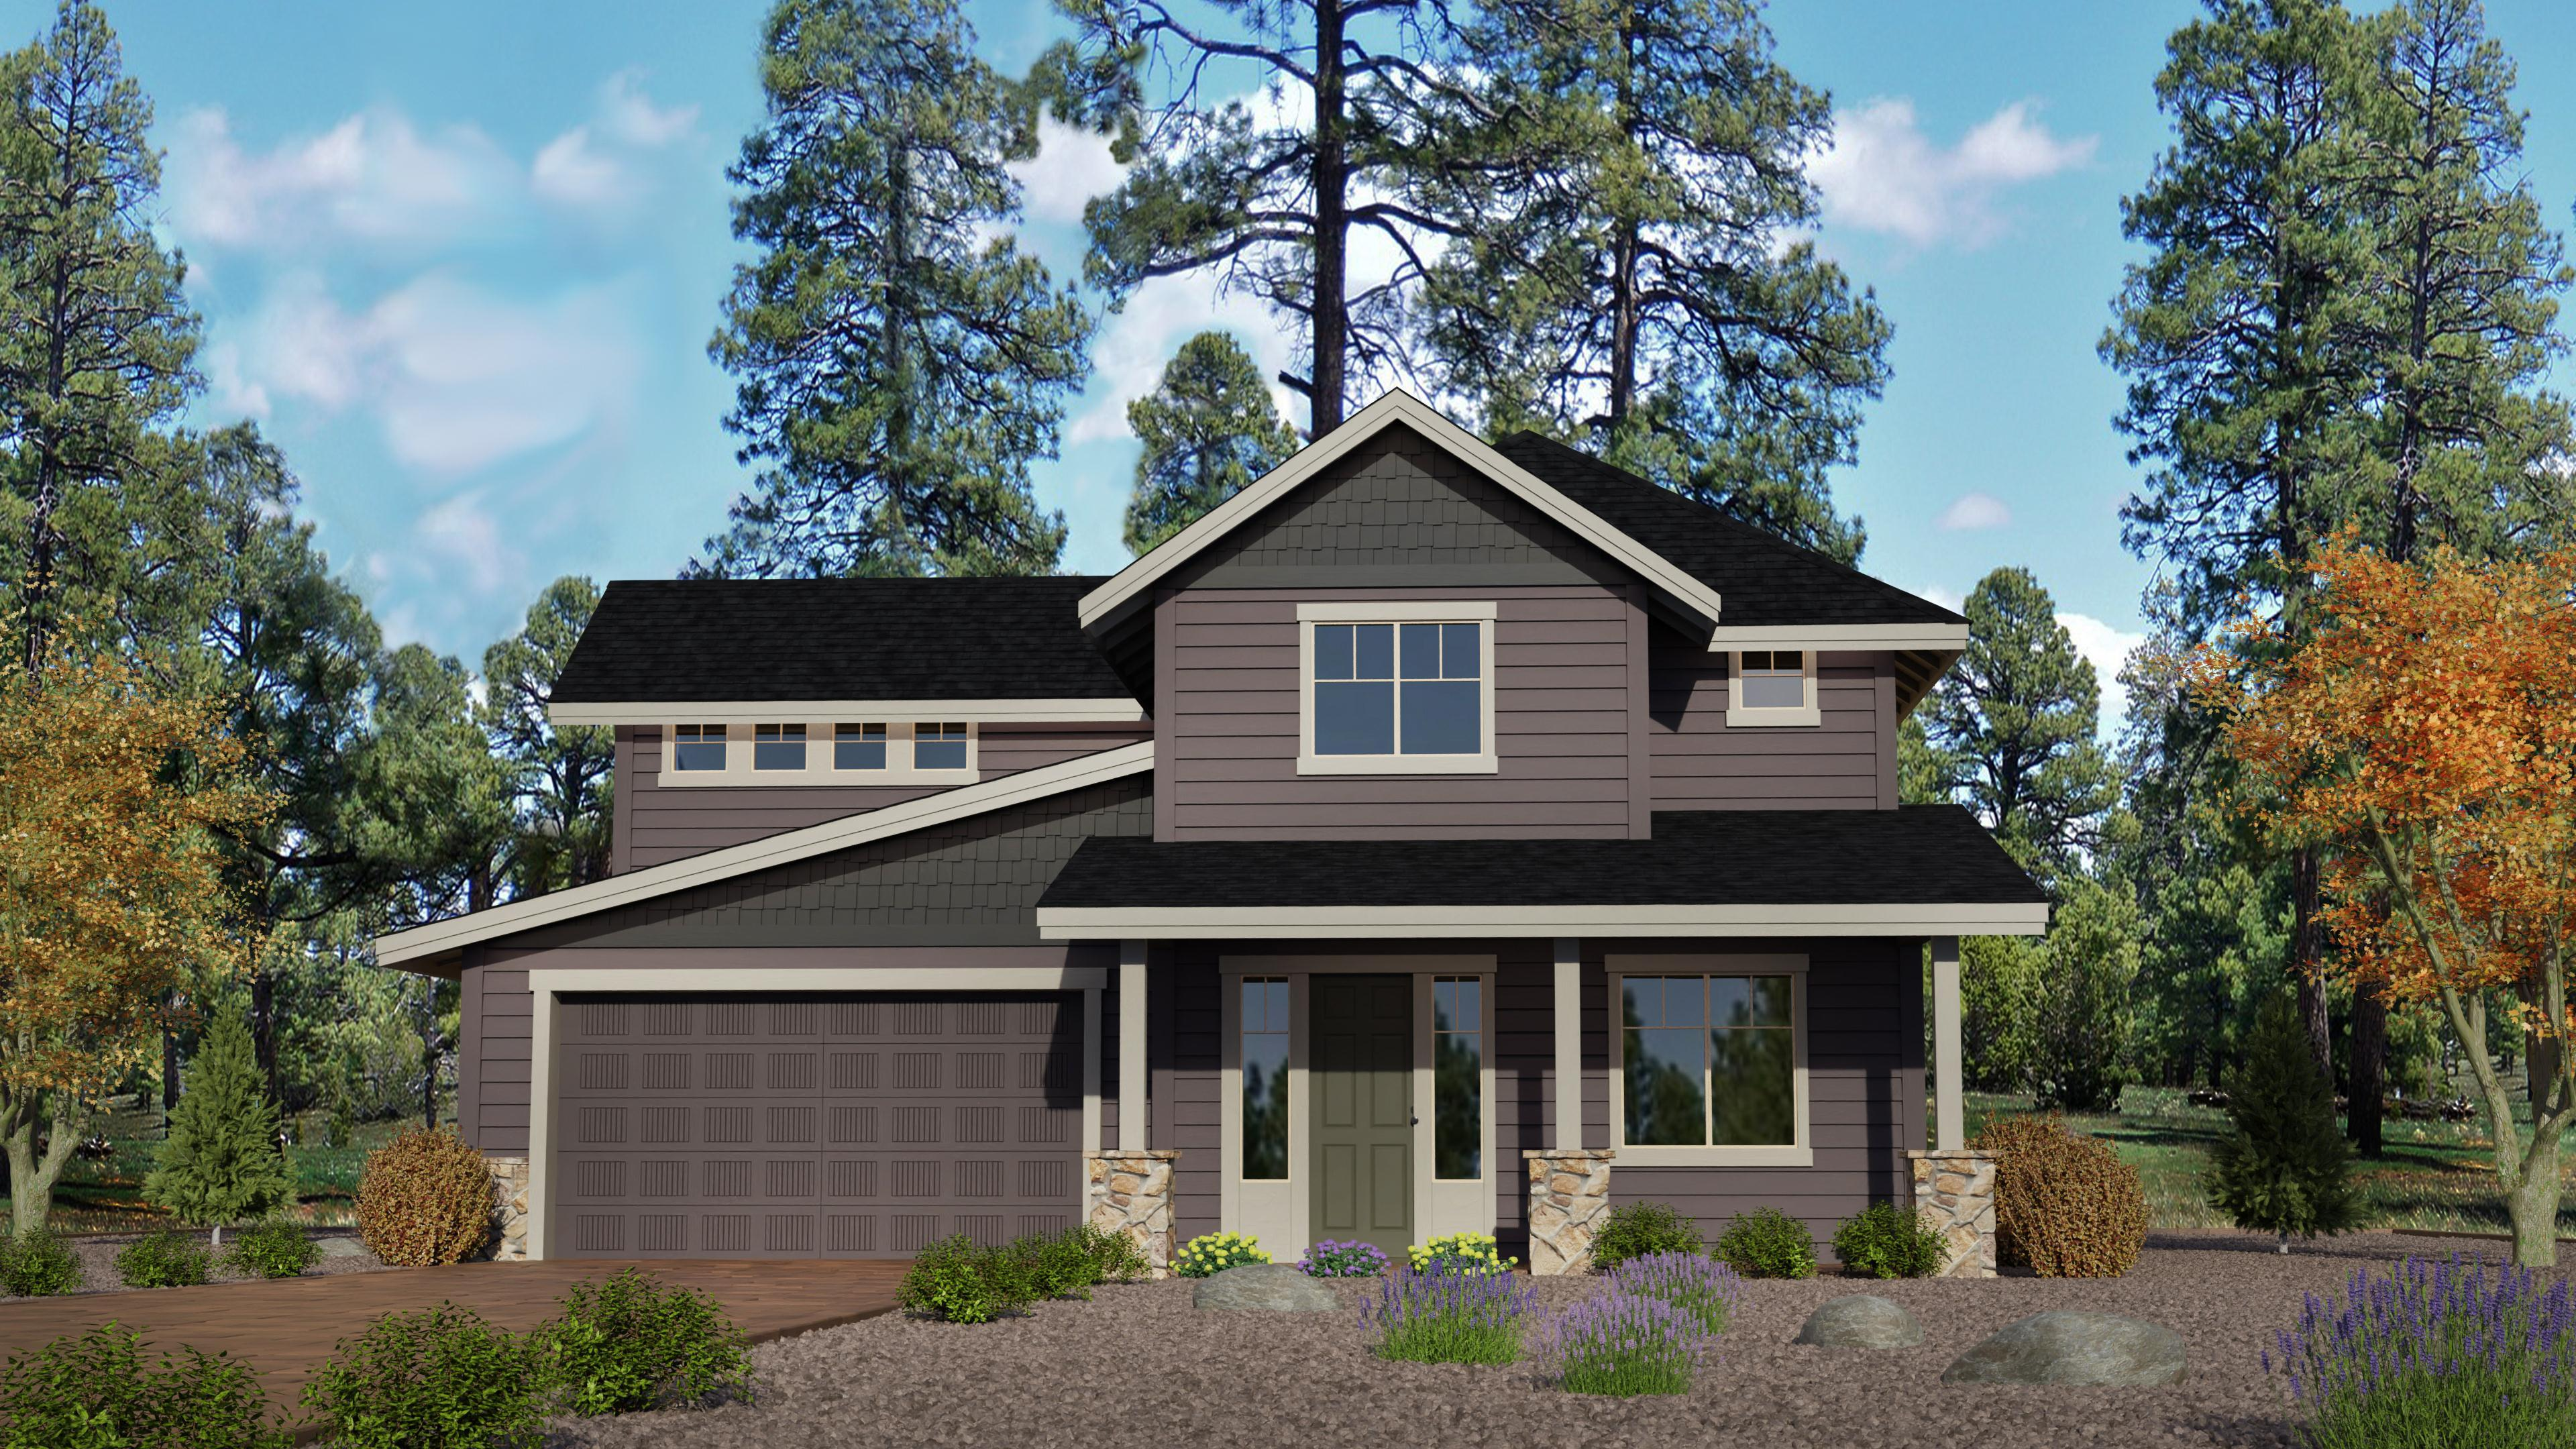 Exterior featured in the Timber Sky Plan 3222 By Capstone Homes in Flagstaff, AZ